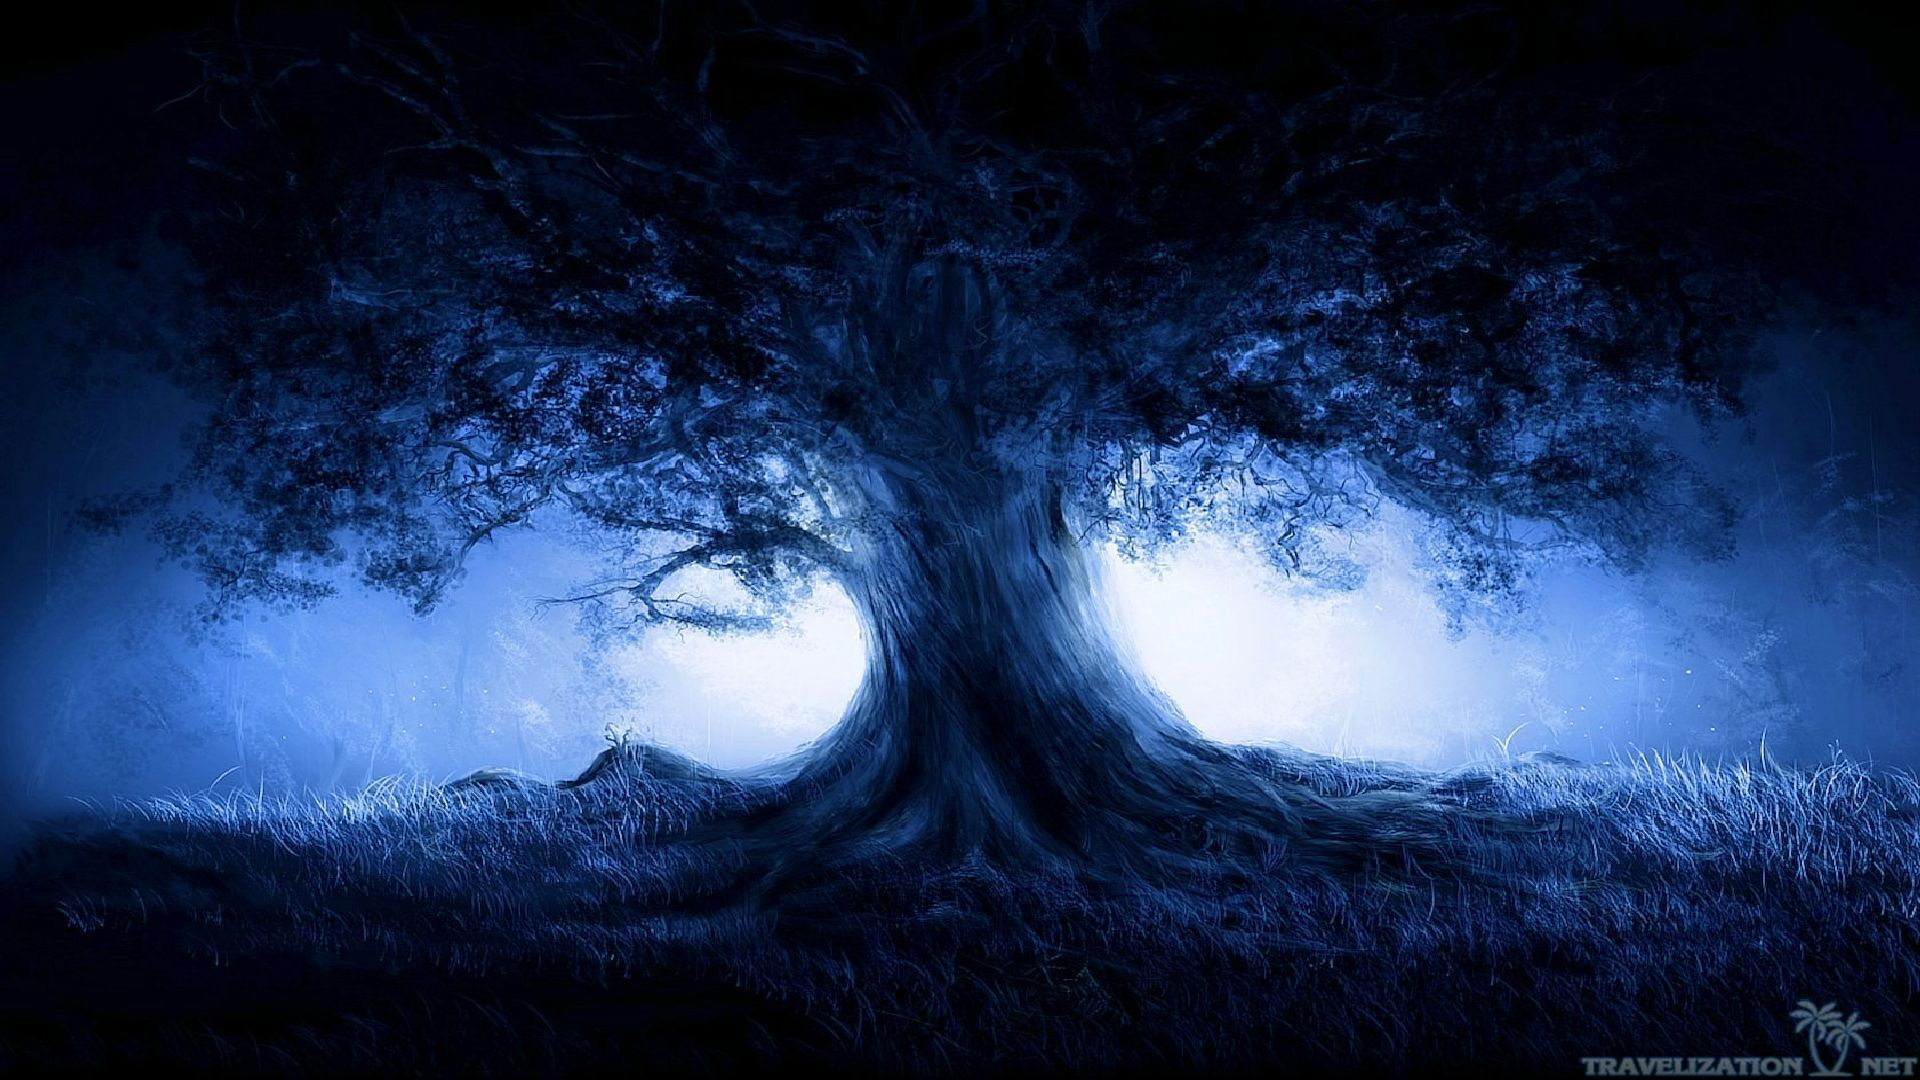 Dark Nature Wallpapers 1080p For Free Wallpaper Fantasy Landscape Landscape Trees Dark Tree